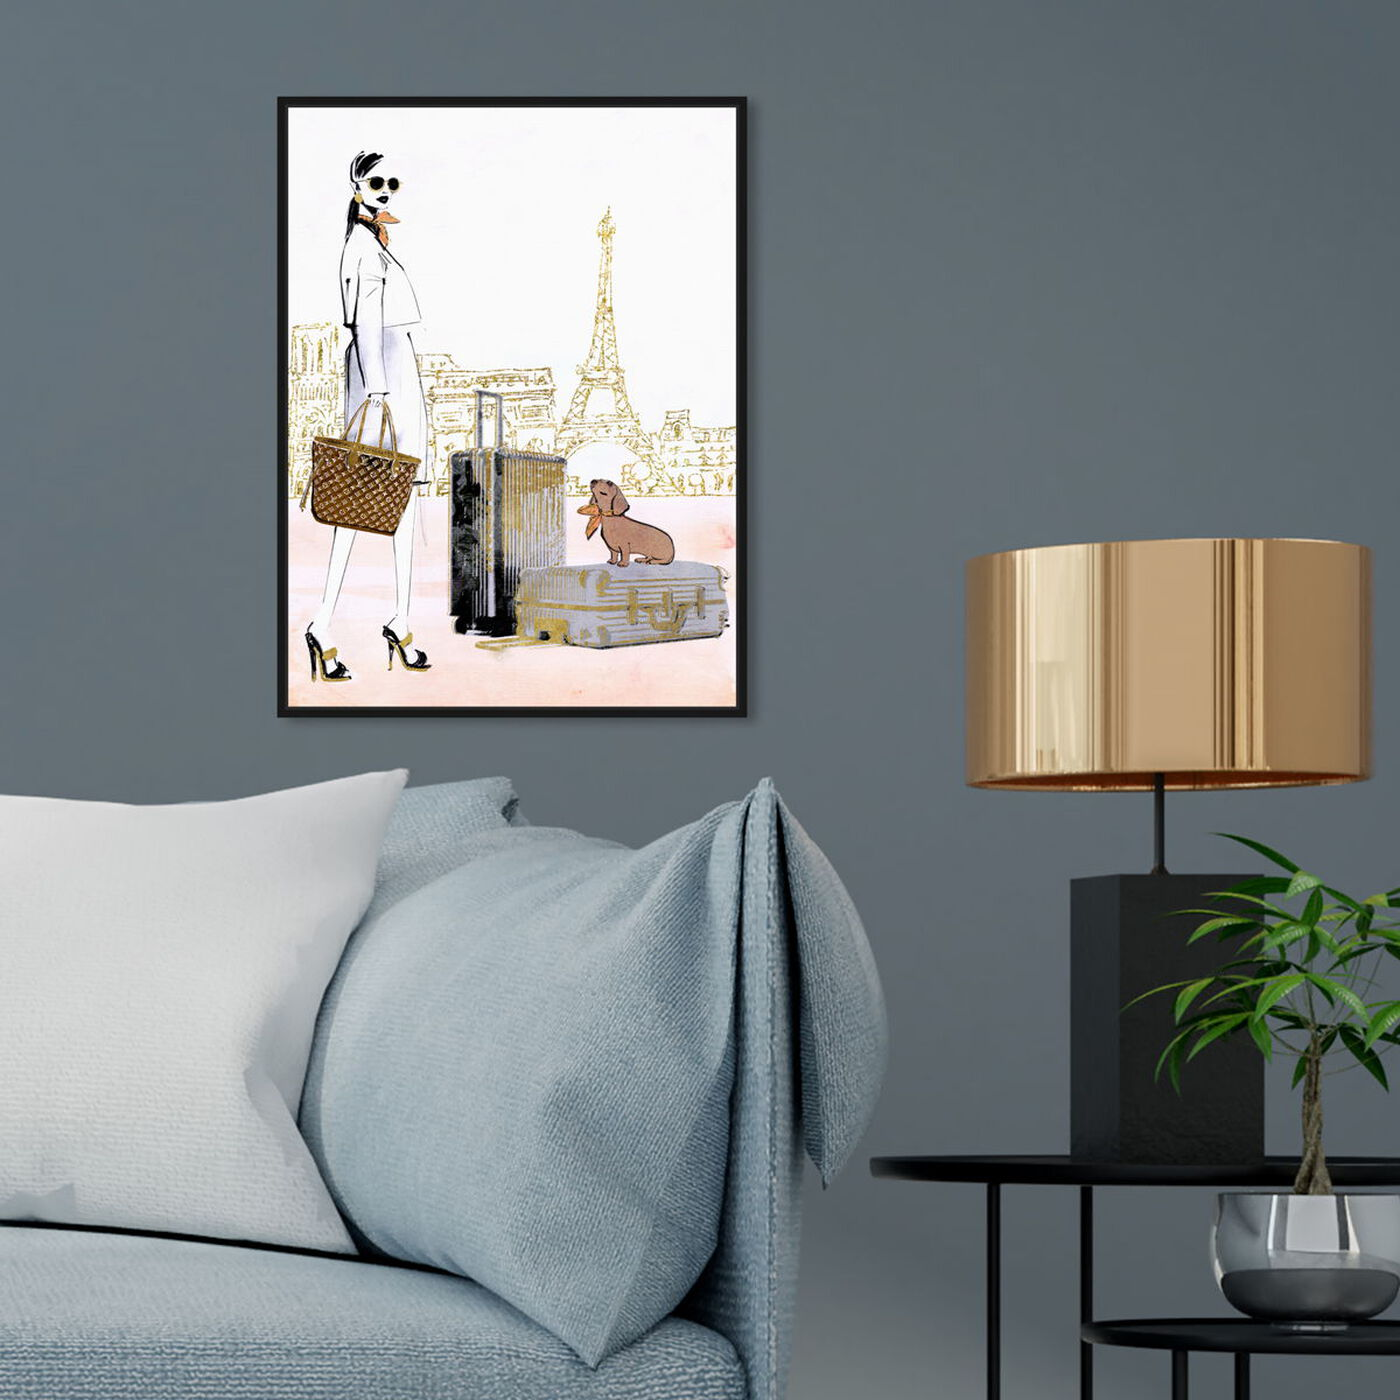 Hanging view of Globetrotter Companion featuring fashion and glam and lifestyle art.